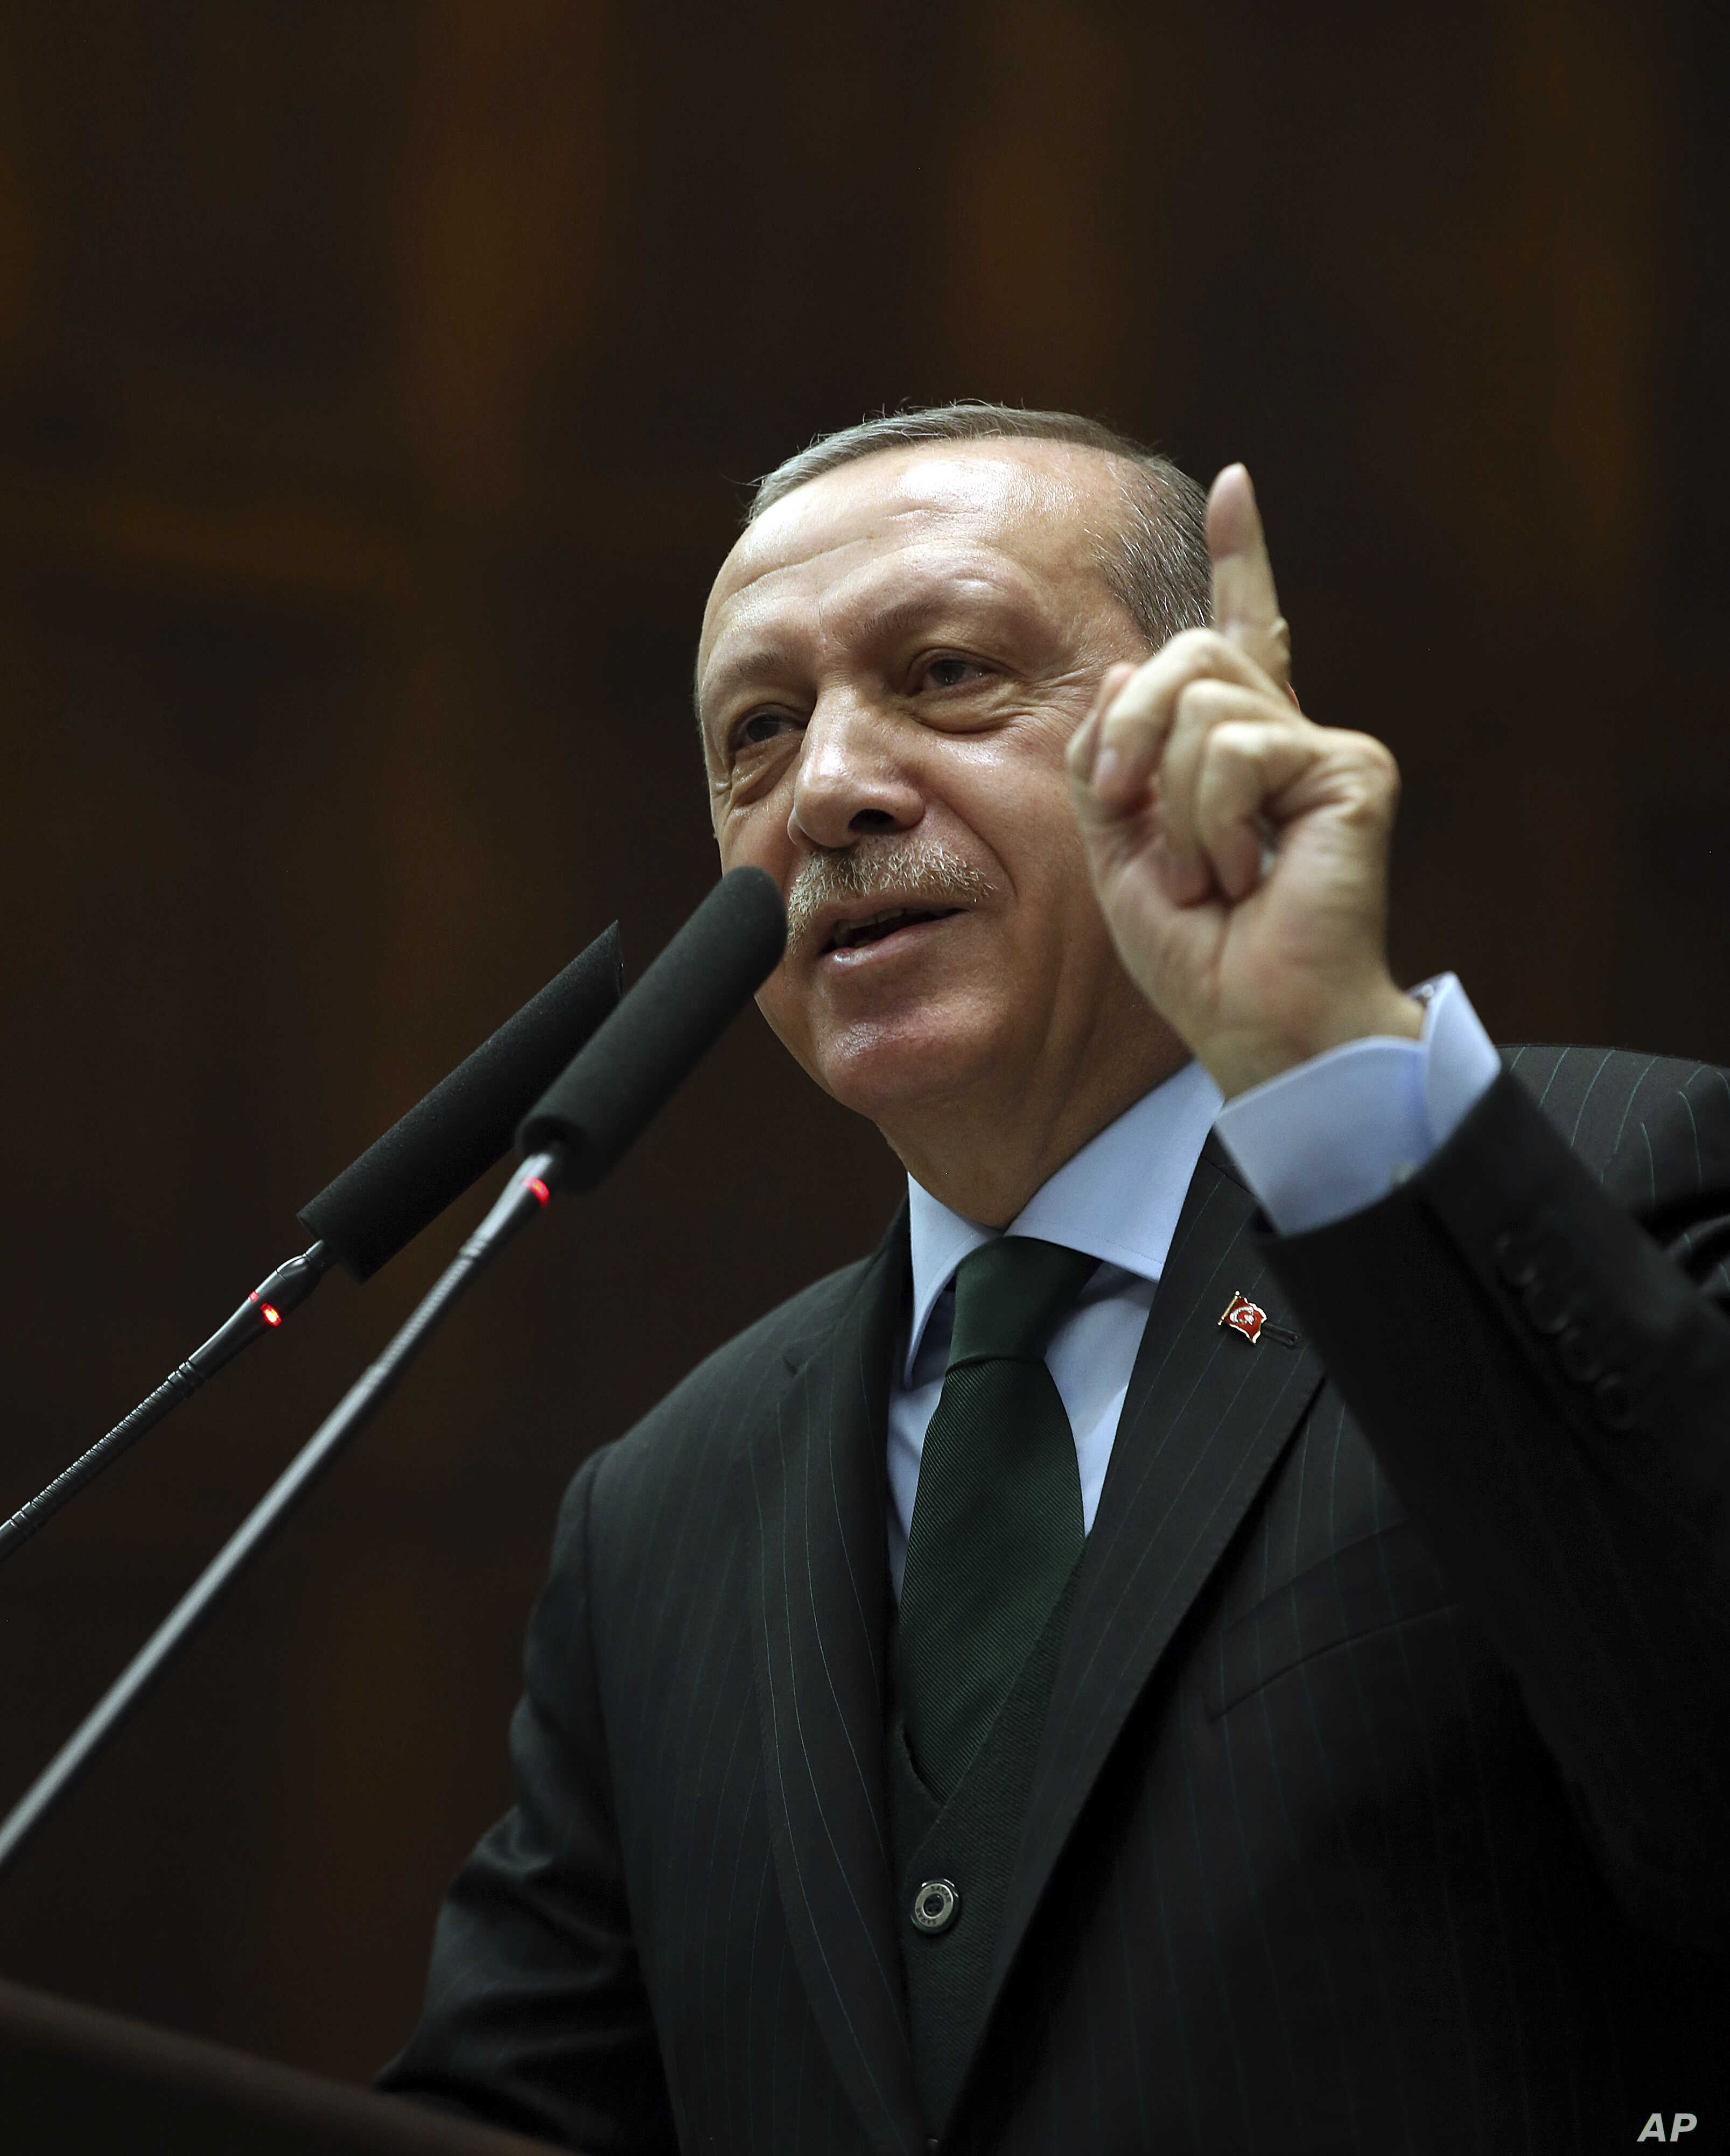 Turkey's President Recep Tayyip Erdogan says U.S. recognition of Jerusalem as Israel's capital is a 'red line' for Muslims and also said such a step would lead Turkey to cut off all diplomatic ties with Israel.